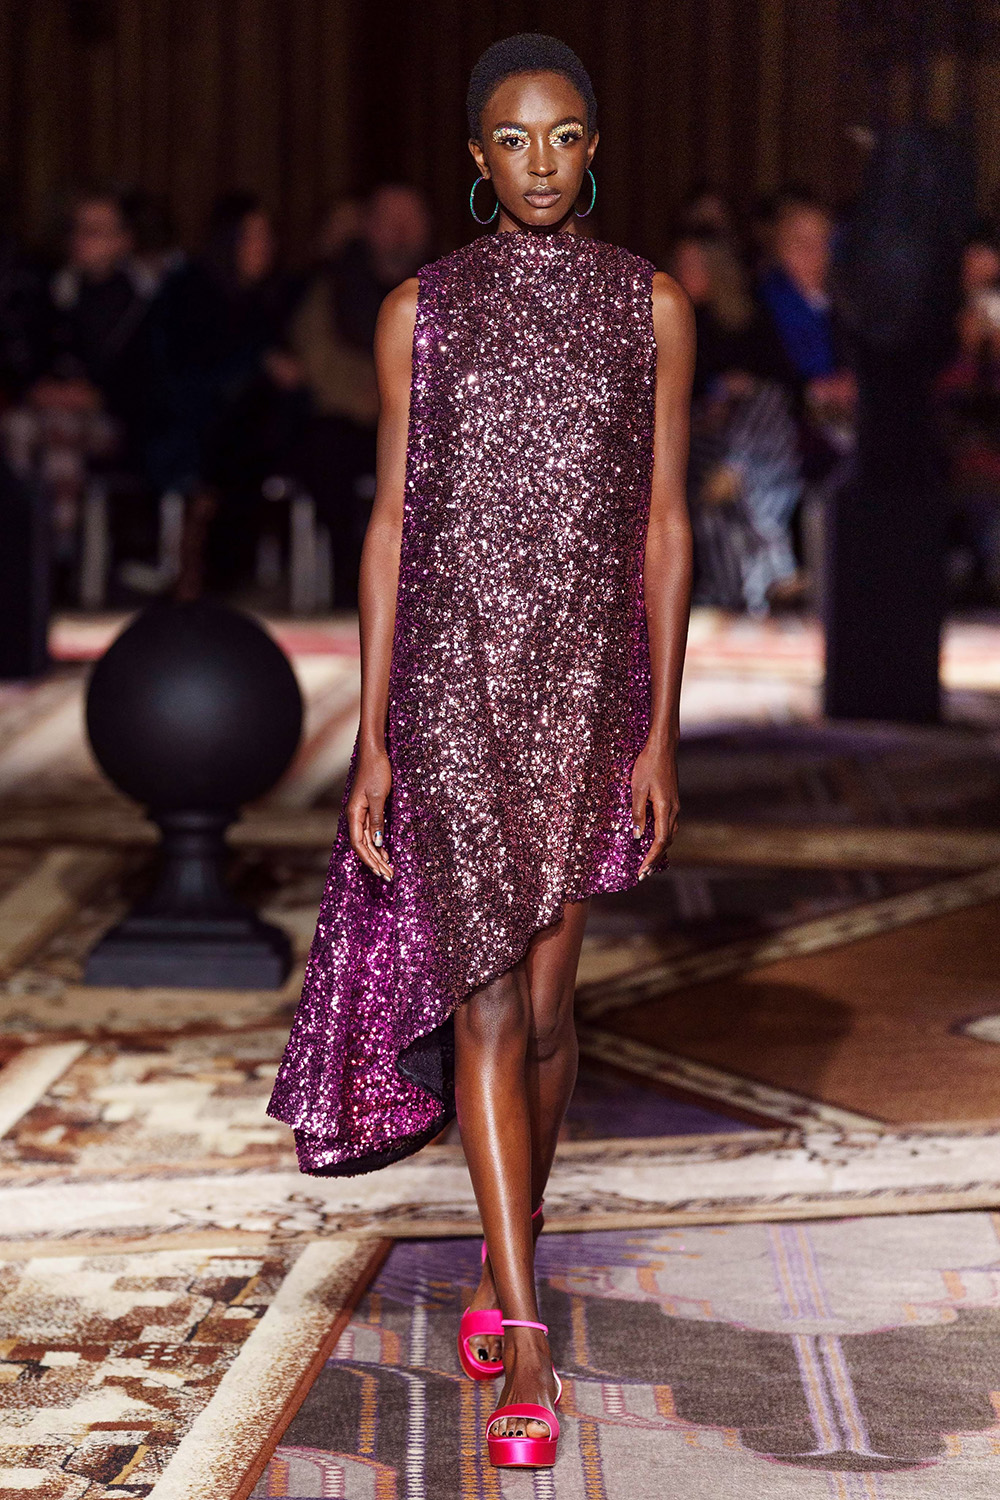 Best London Fashion Week Looks Off the Fall 2019 Runways I Halpern Sparkling Purple Cocktail Dress #FashionWeek #LFW #DesignerFashion